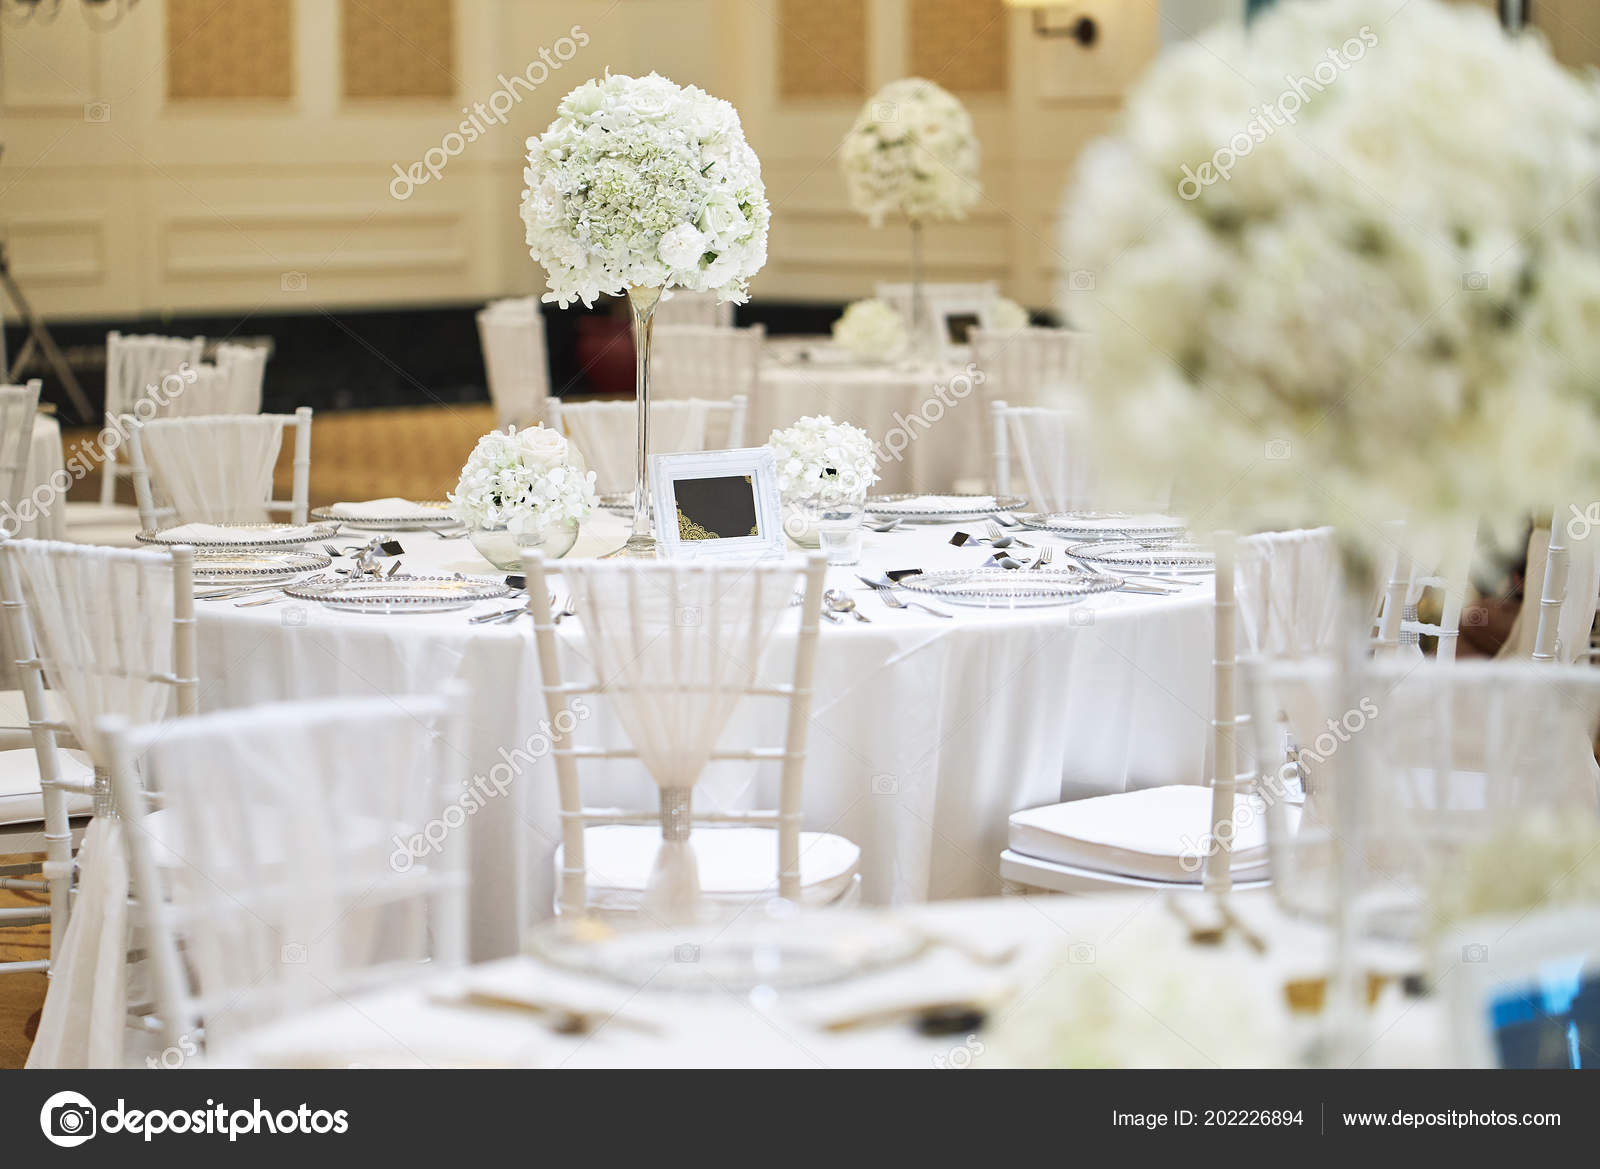 The Wedding Reception Dinner Venue Setup With The White Flower Theme, A  Bunch Of White Roses, Flower, Floral Decoration On The Dinner Table.